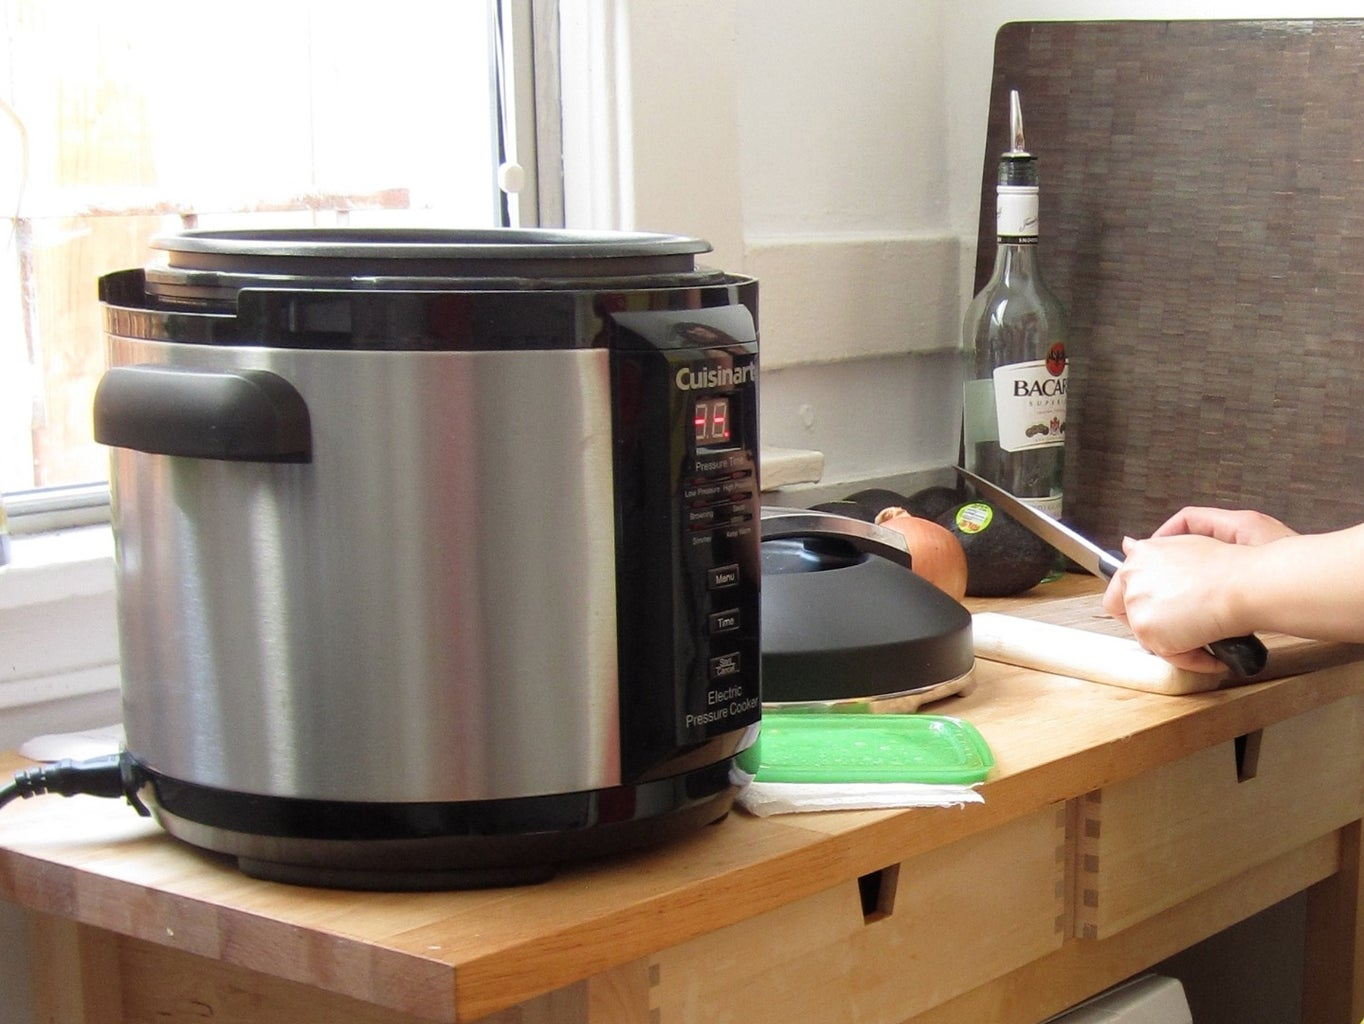 How to Cook in an Electric Pressure Cooker